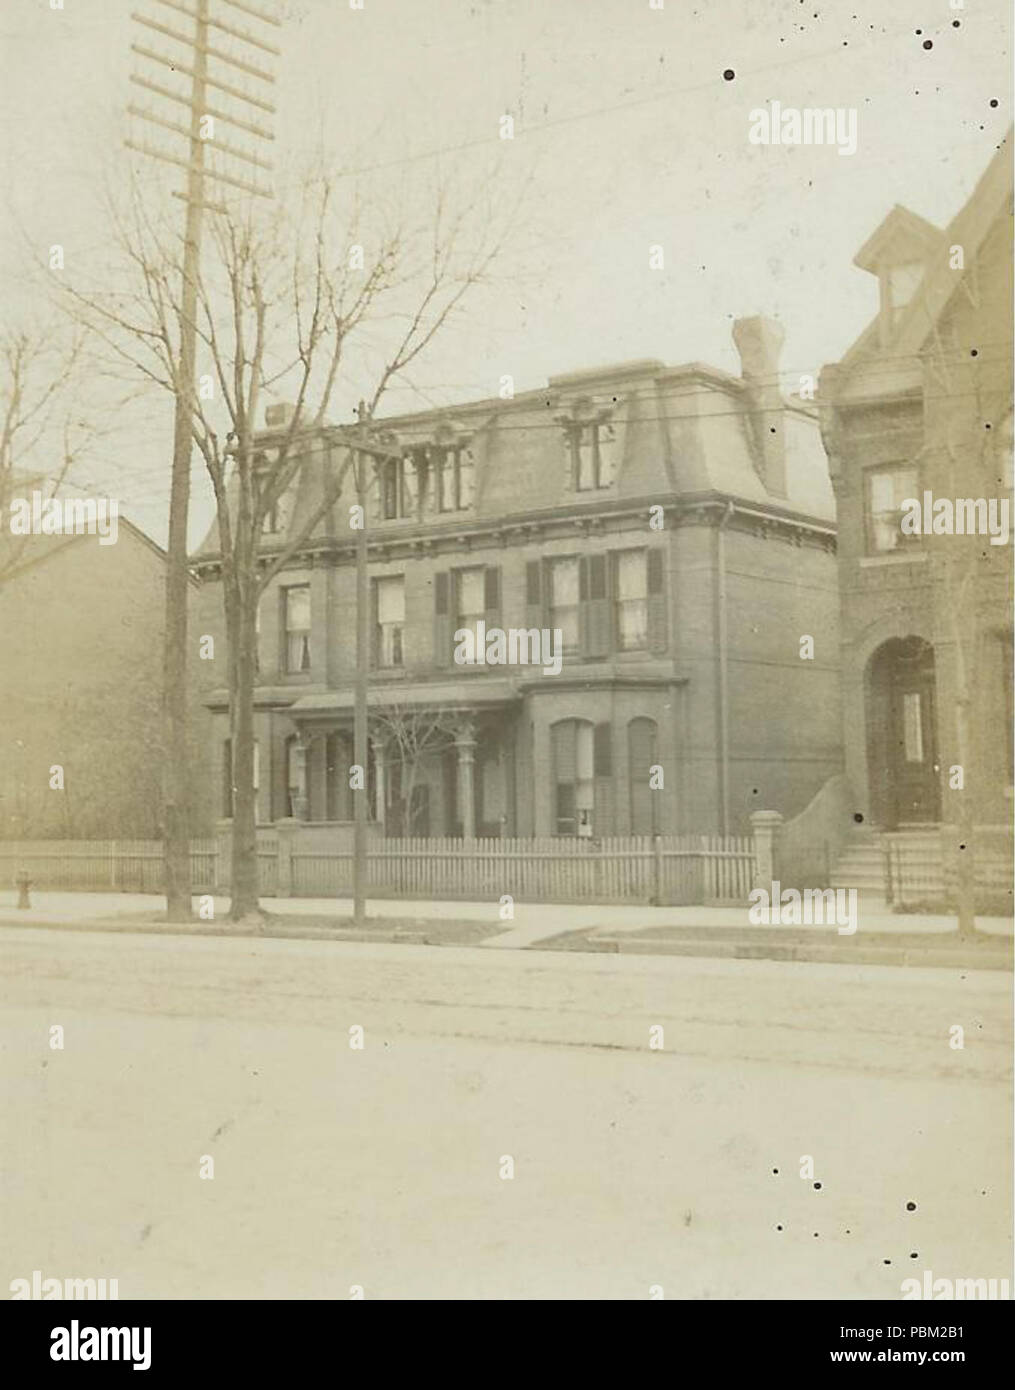 . English: House at 85 Bloor Street West. At the time of this upload in 2009, site is the location of a Tiffany and Co. jewellery store. Toronto, Canada. circa 1908 772 House at 85 Bloor Street West - Stock Image